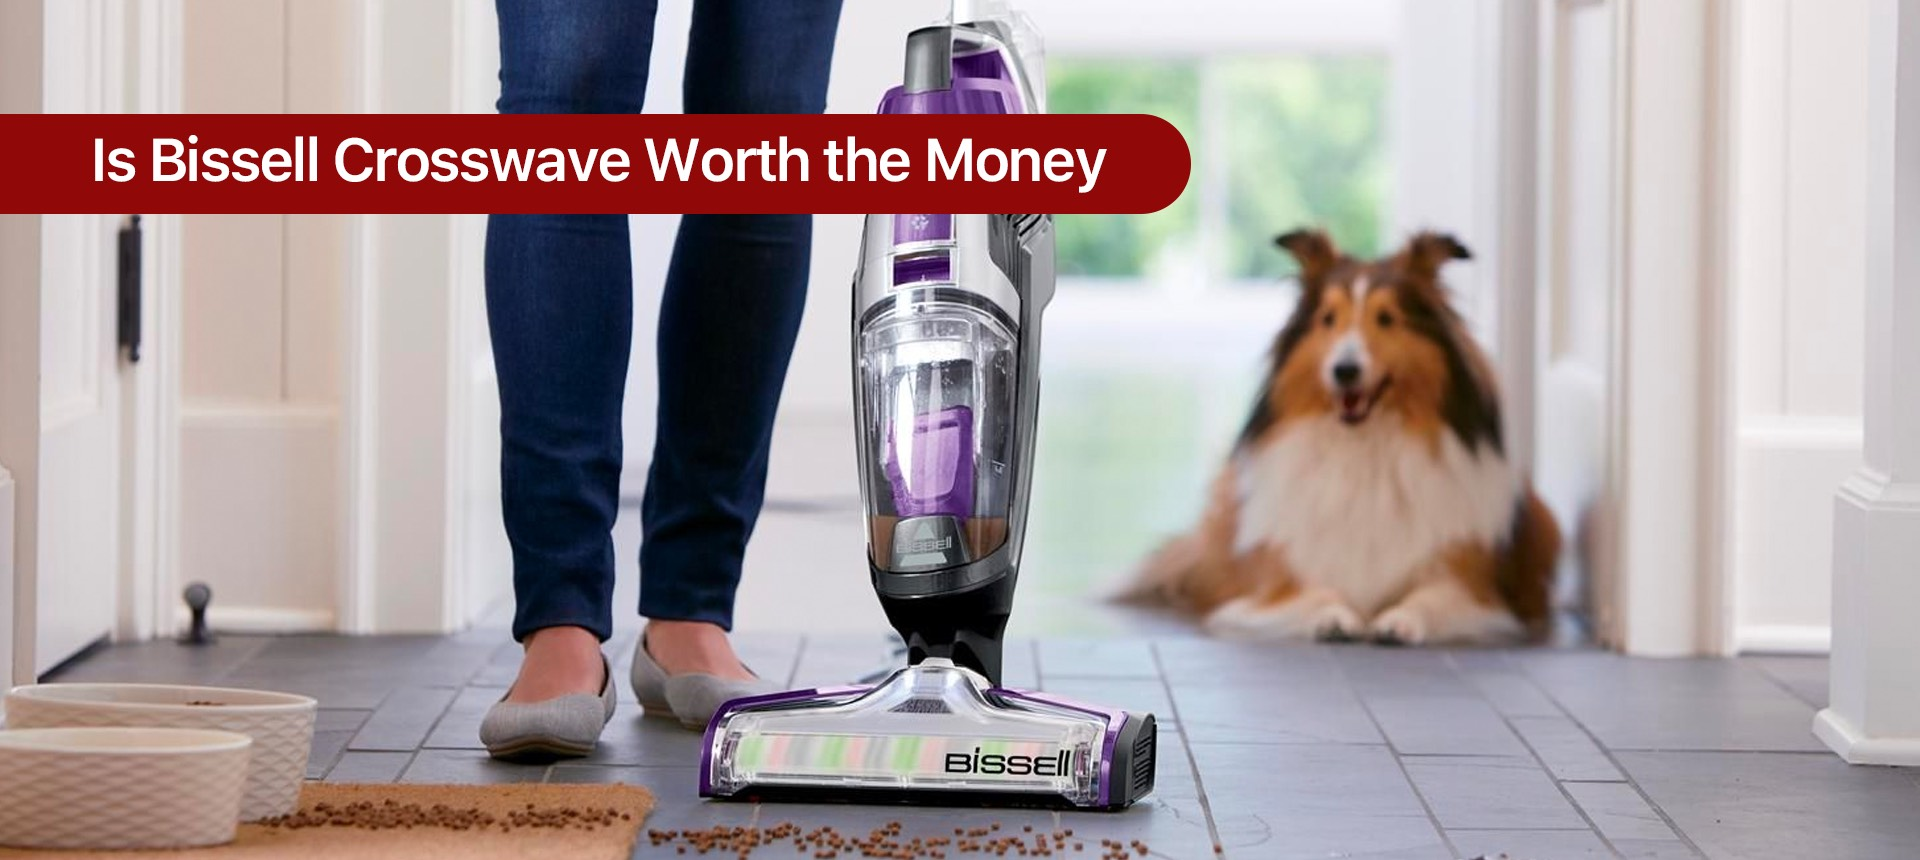 Is Bissell Crosswave Worth the Money